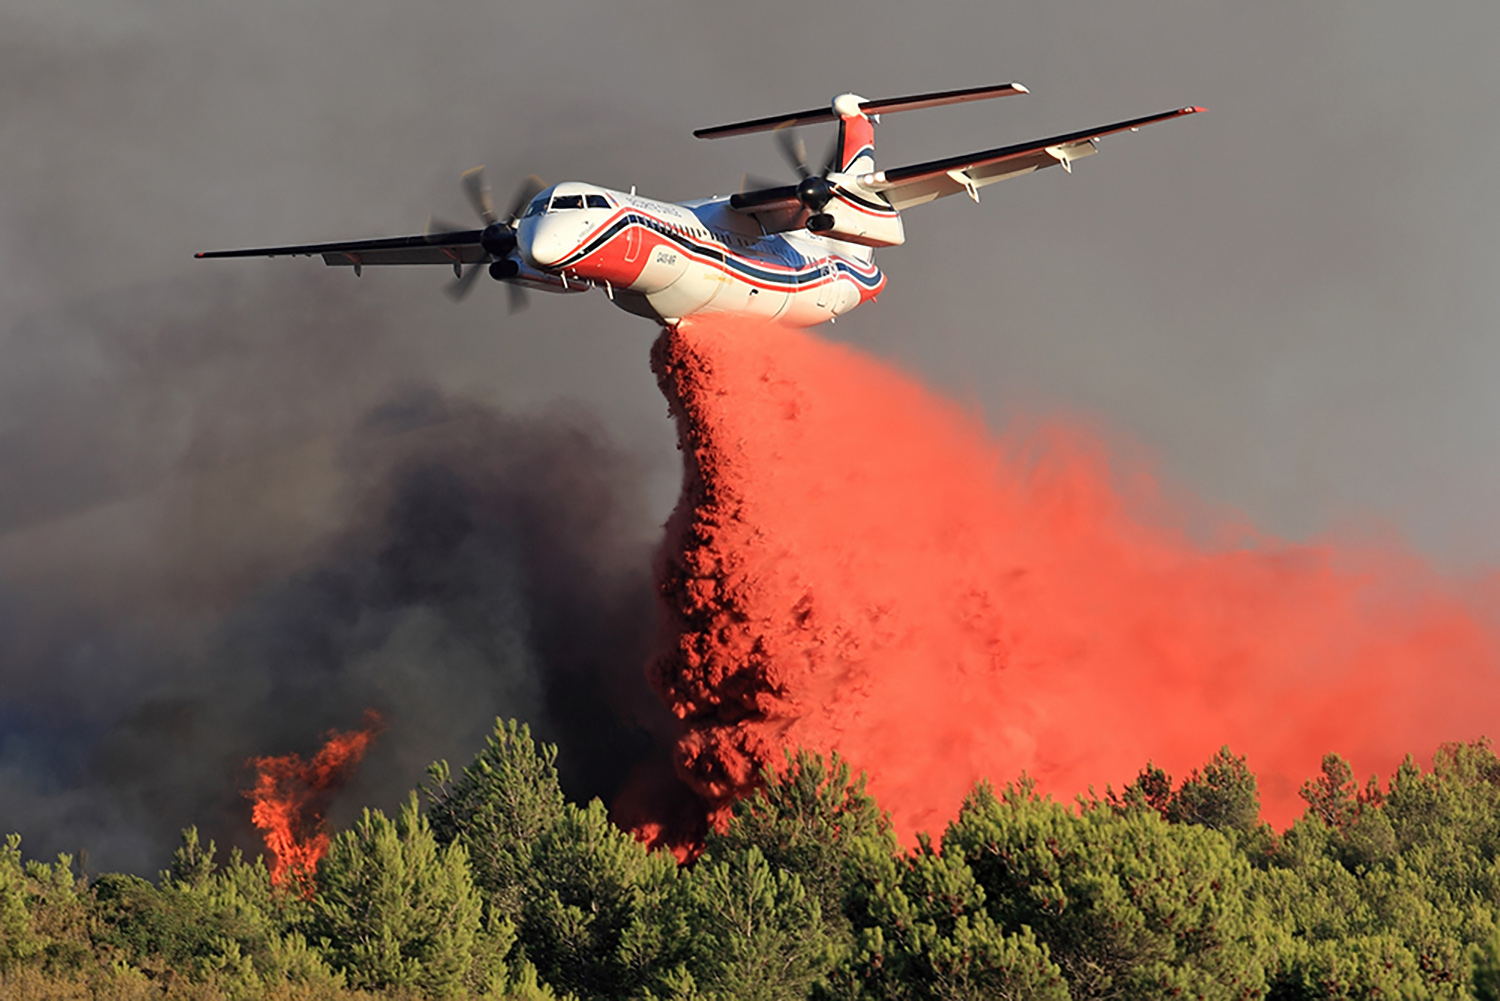 Conair Q400MR aircraft drops flame retardant on forest